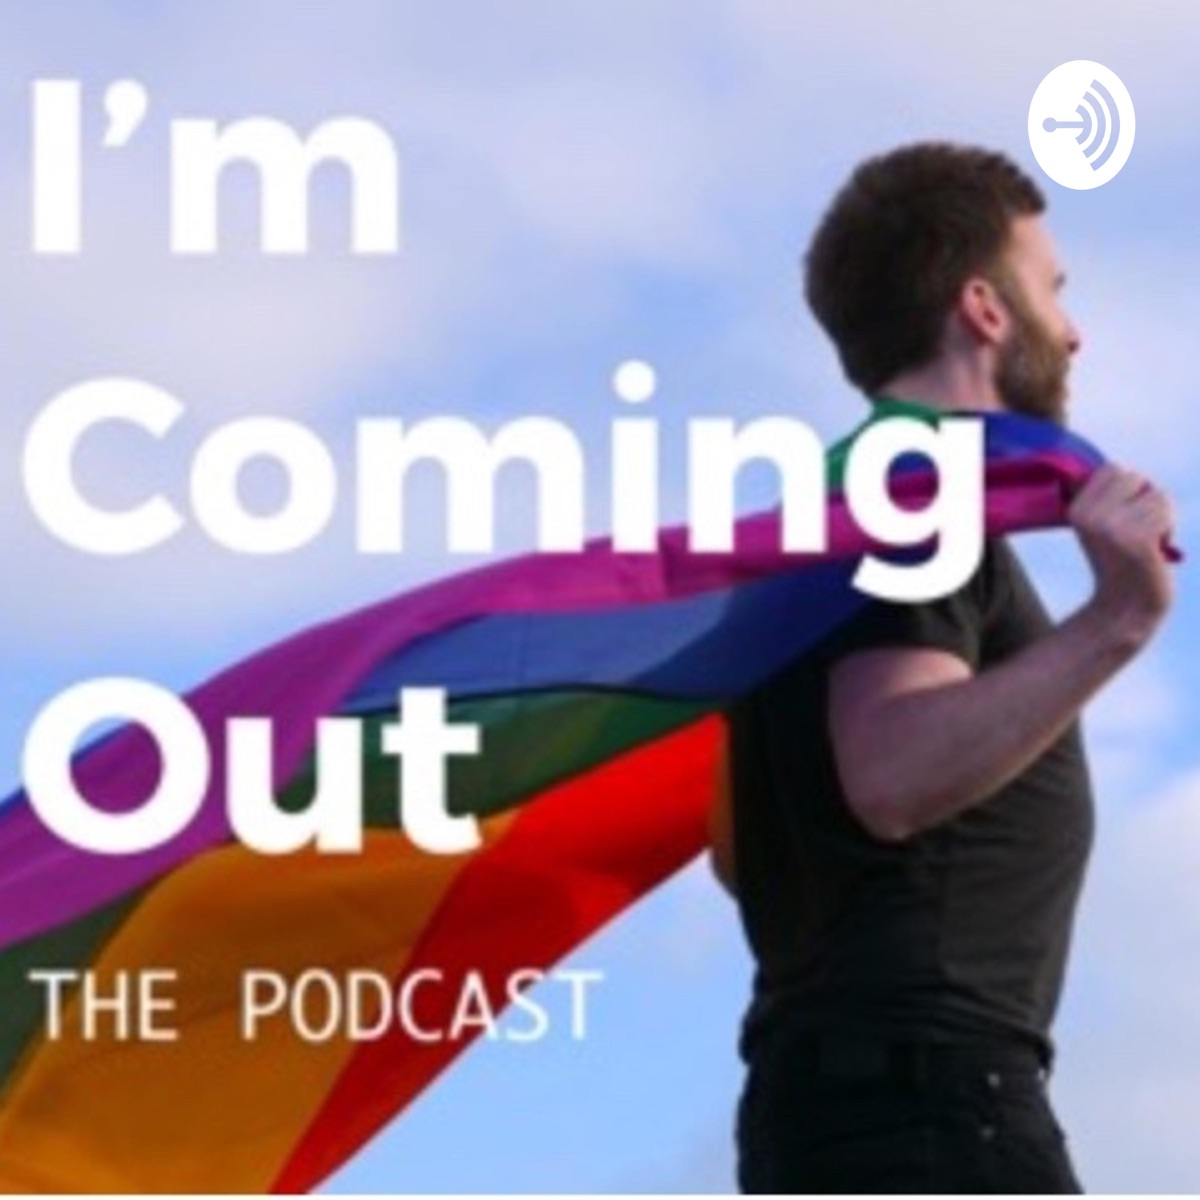 I'm Coming Out The Podcast